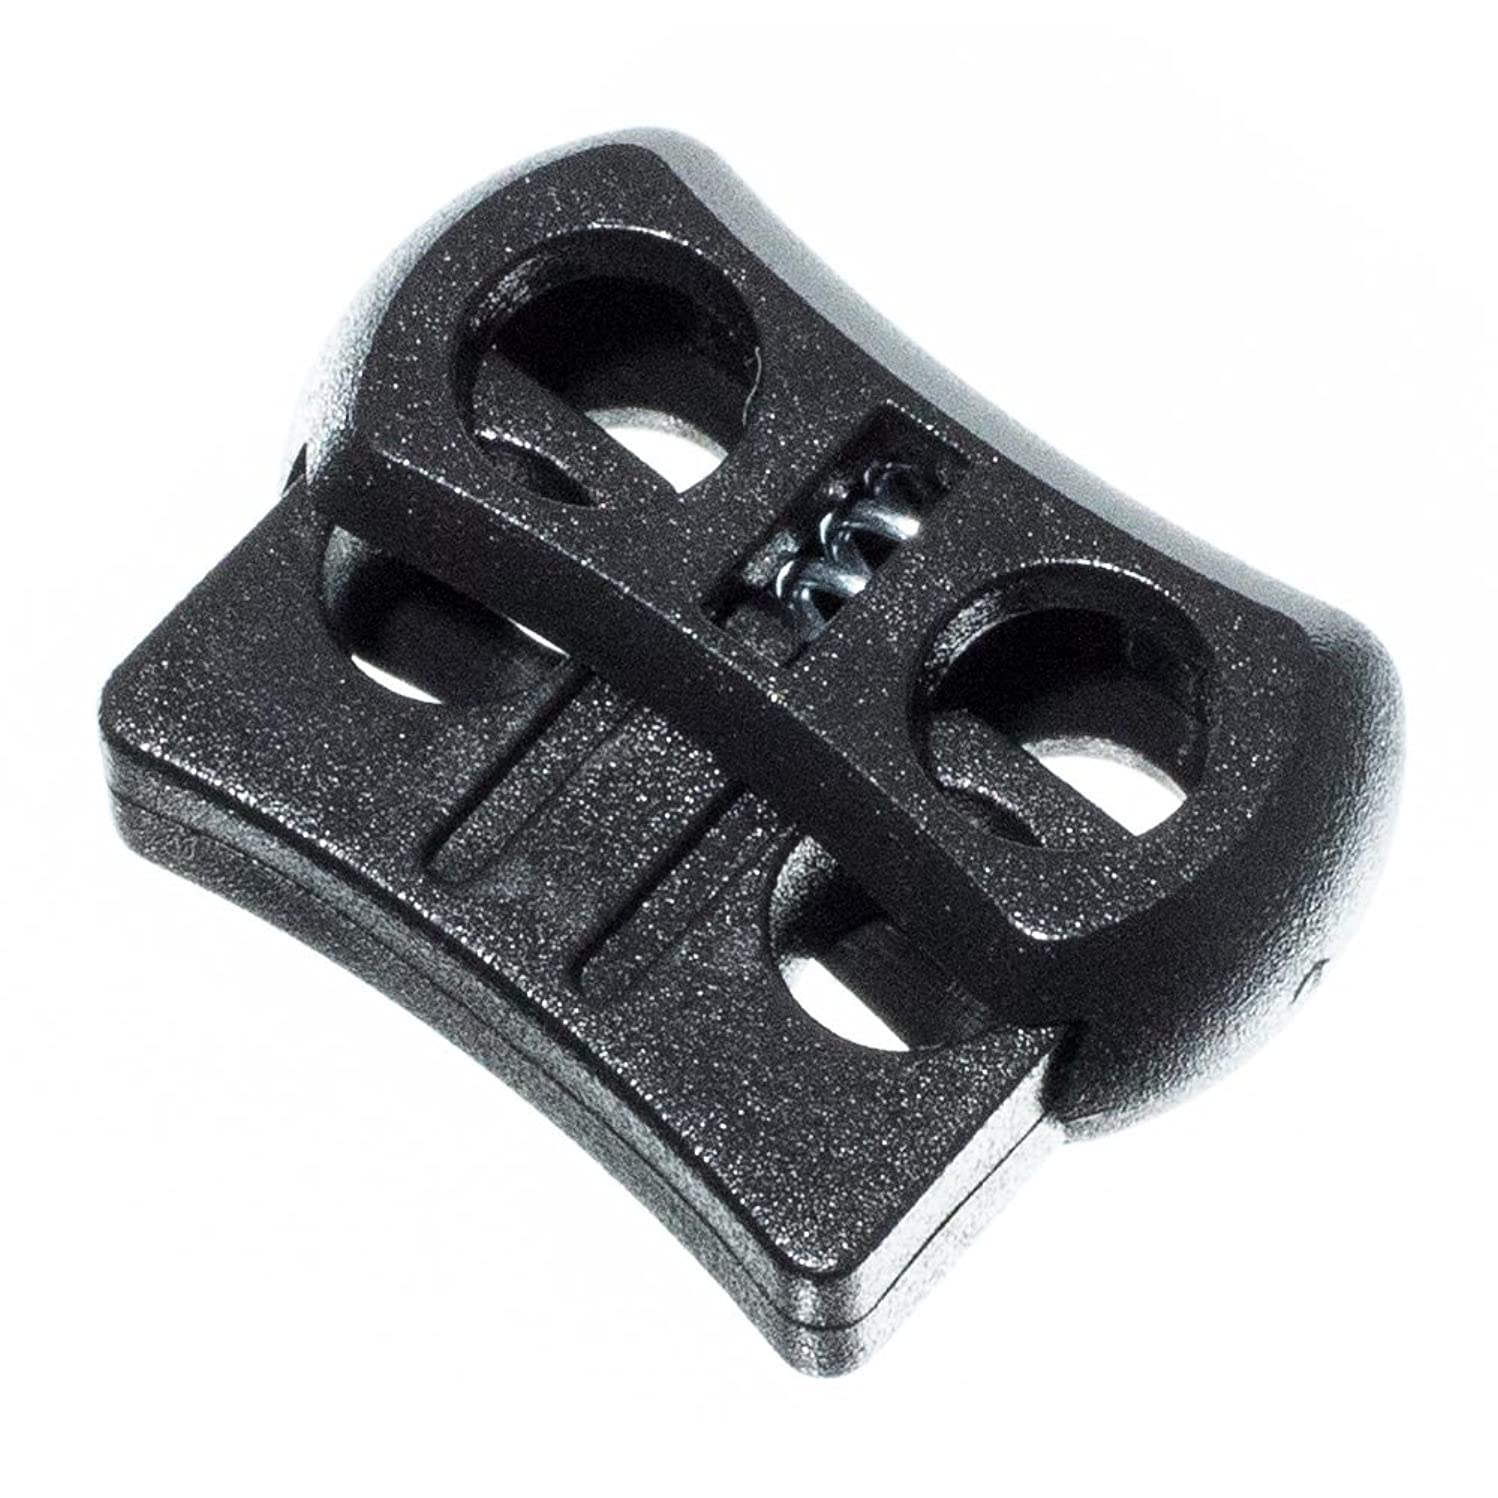 PARACORD PLANET Dual Circle Cord Lock Plastic Spring Stop Toggle – Dual Lock for 1/8 inch Cord